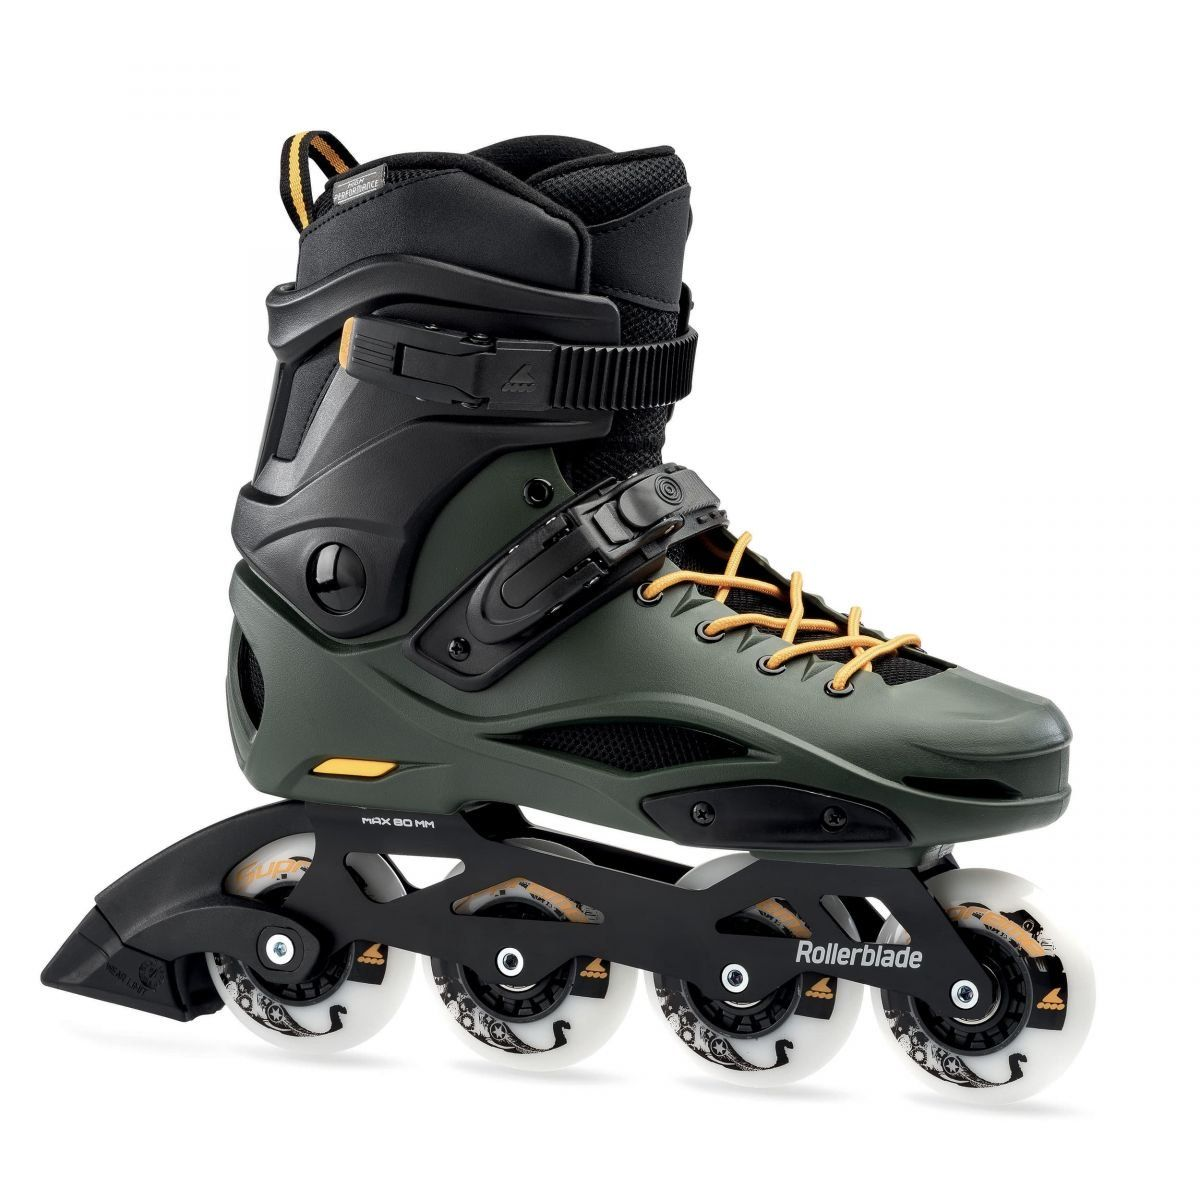 Rollerblade RB 80 Pro 35